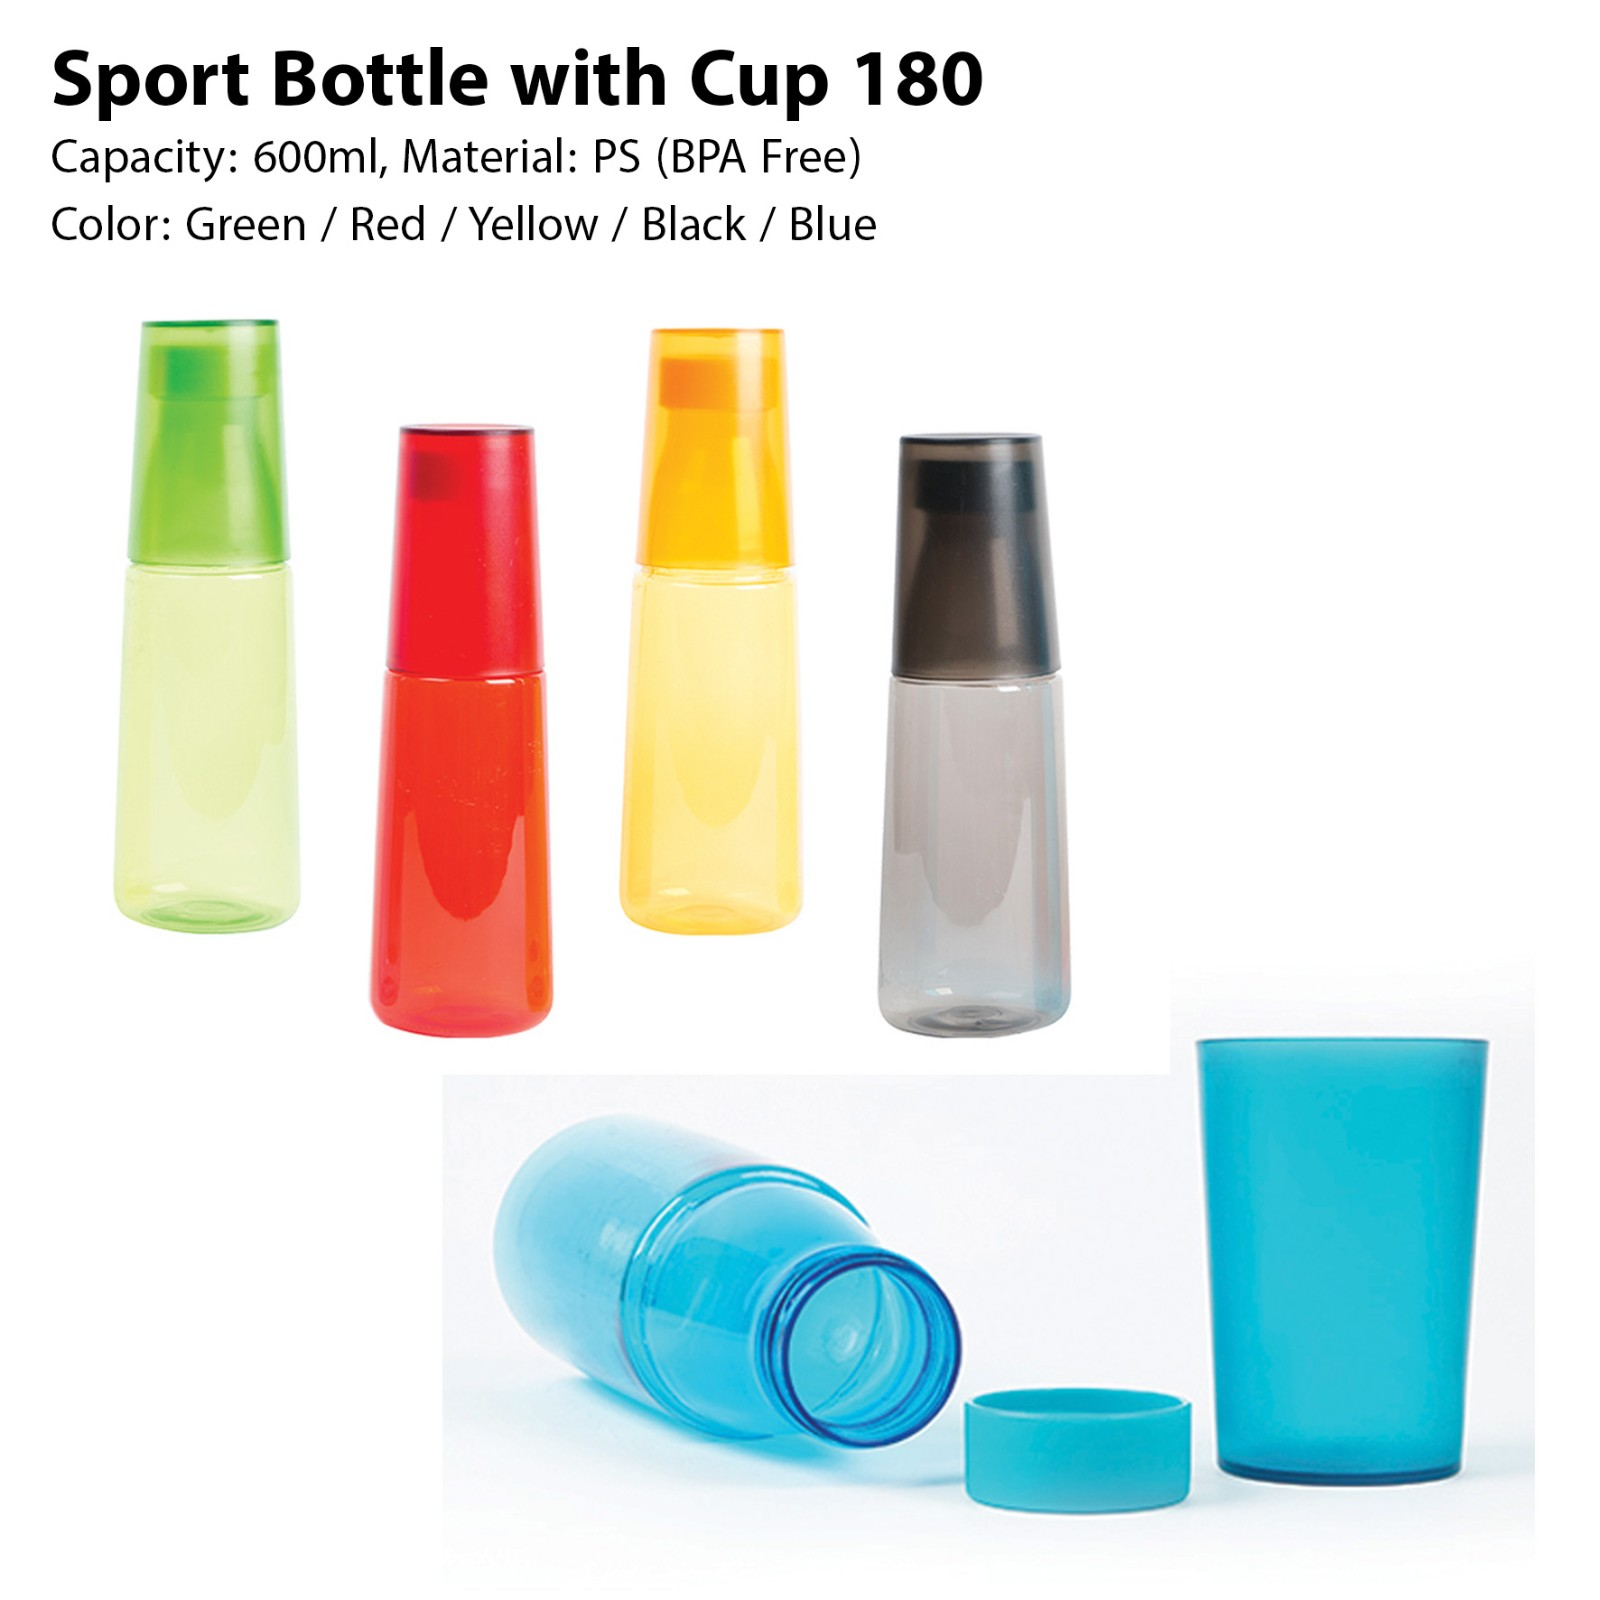 Sport Bottle with Cup 180